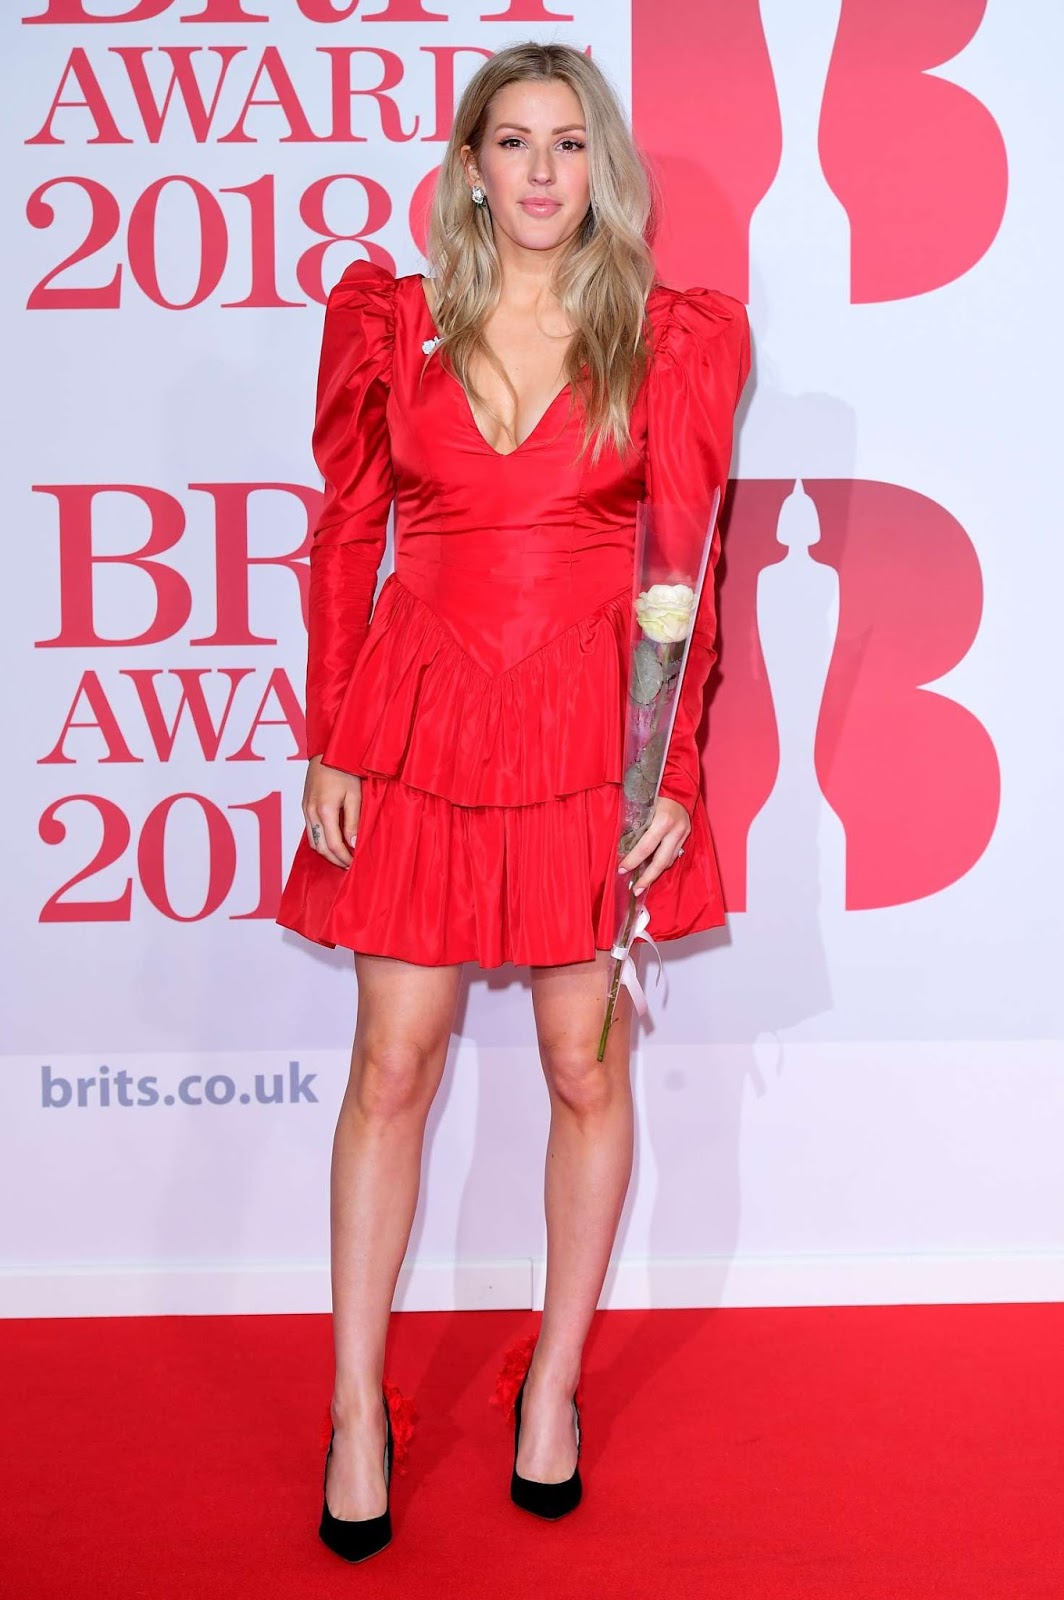 Ellie Goulding bares long legs at the 2018 BRIT Awards